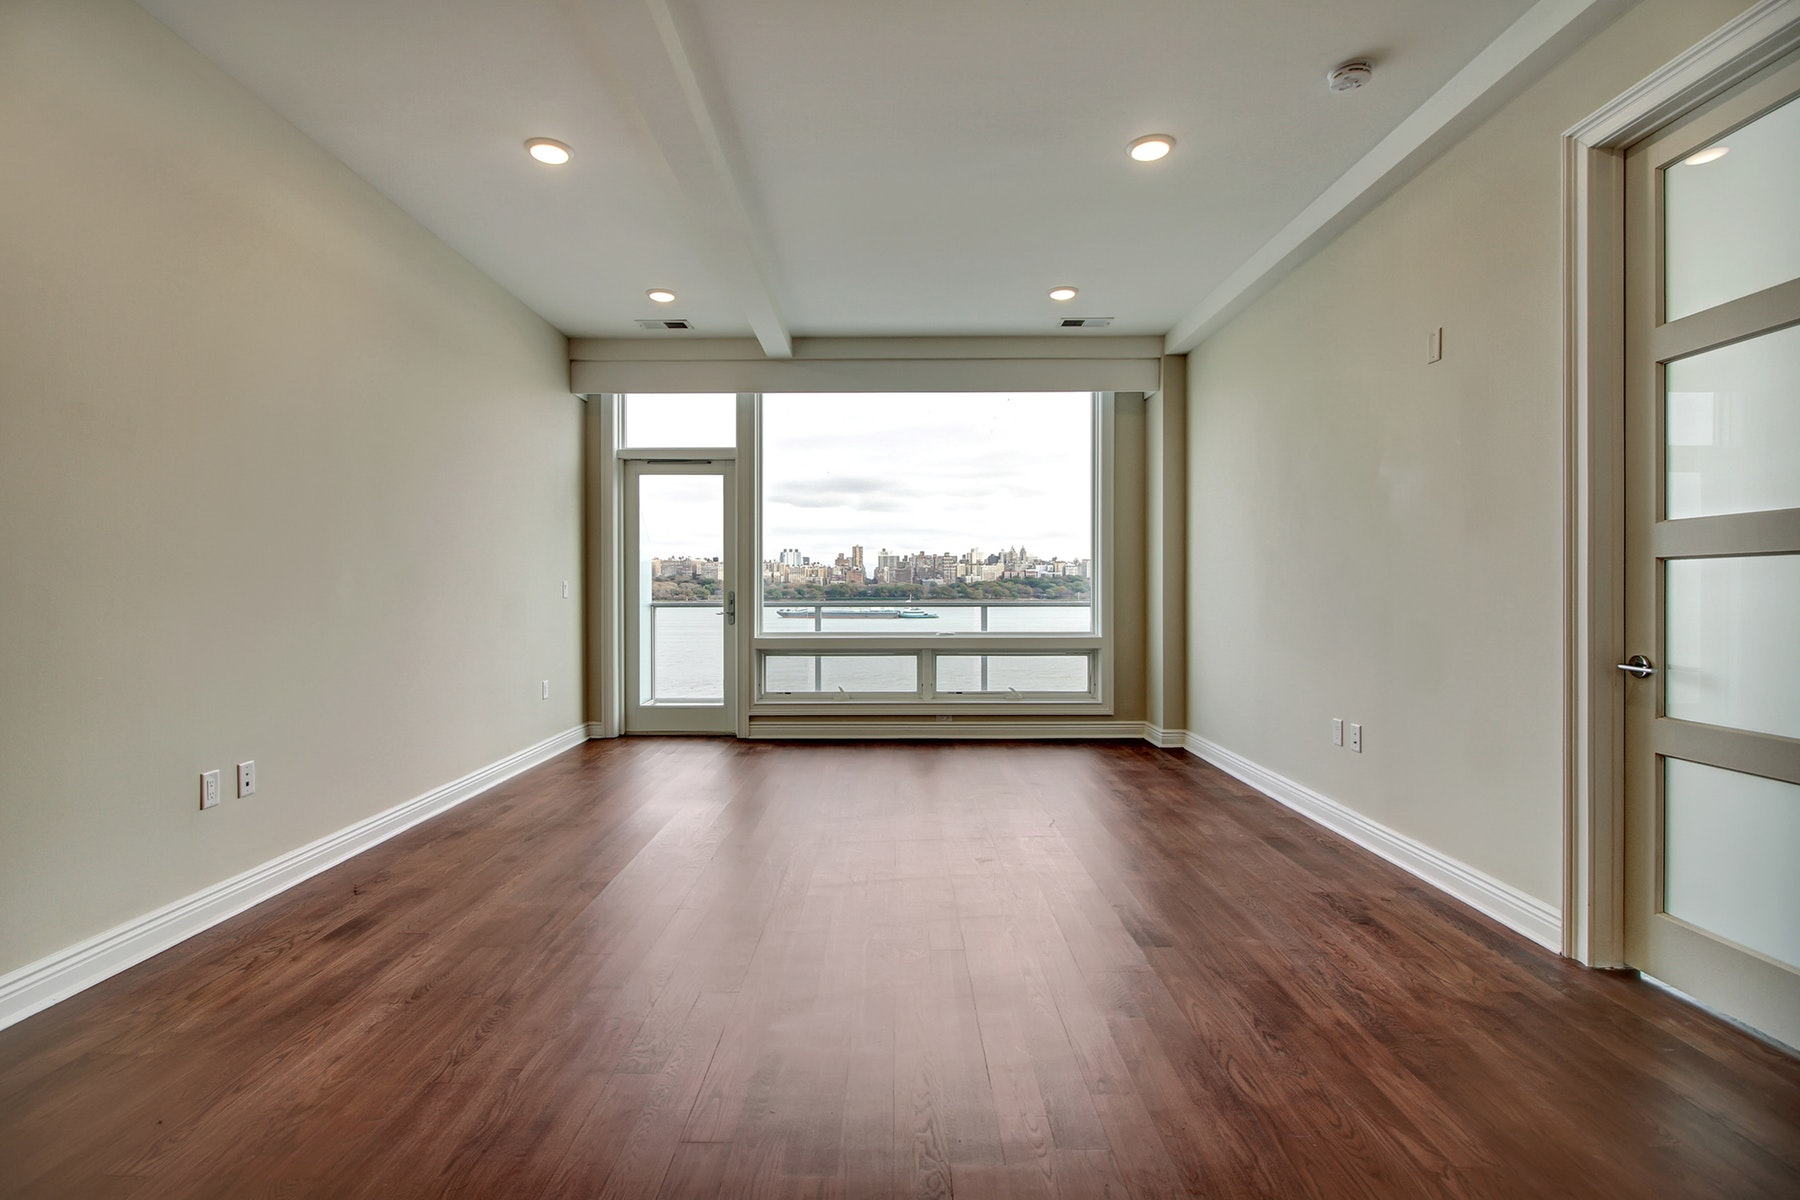 Condominium for Rent at The Pearl 9 Somerset Lane #619 Edgewater, New Jersey 07020 United States